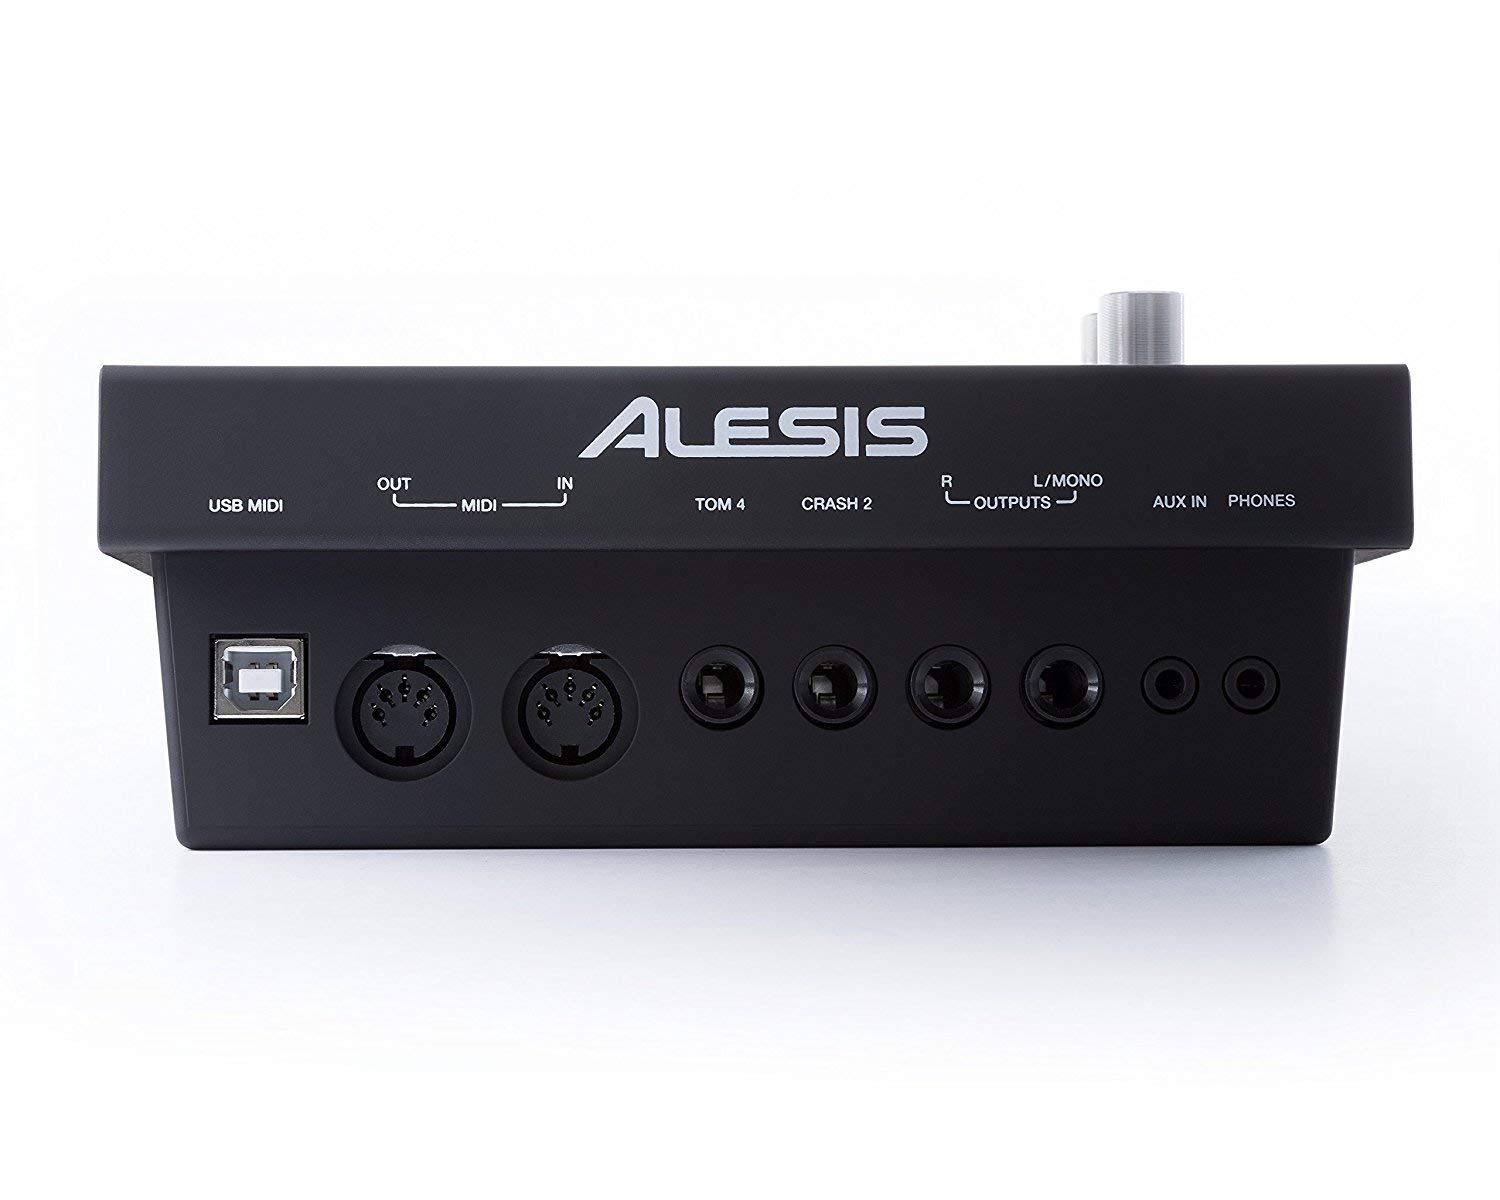 Alesis COMMAND MESH KIT Eight-Piece Electronic Drum Kit with Pair of Drumsticks + Samson SR550 Studio Headphones + Hosa 3.5 mm Interconnect Cable, 10 feet - Deluxe Accessory Bundle by Alesis (Image #8)